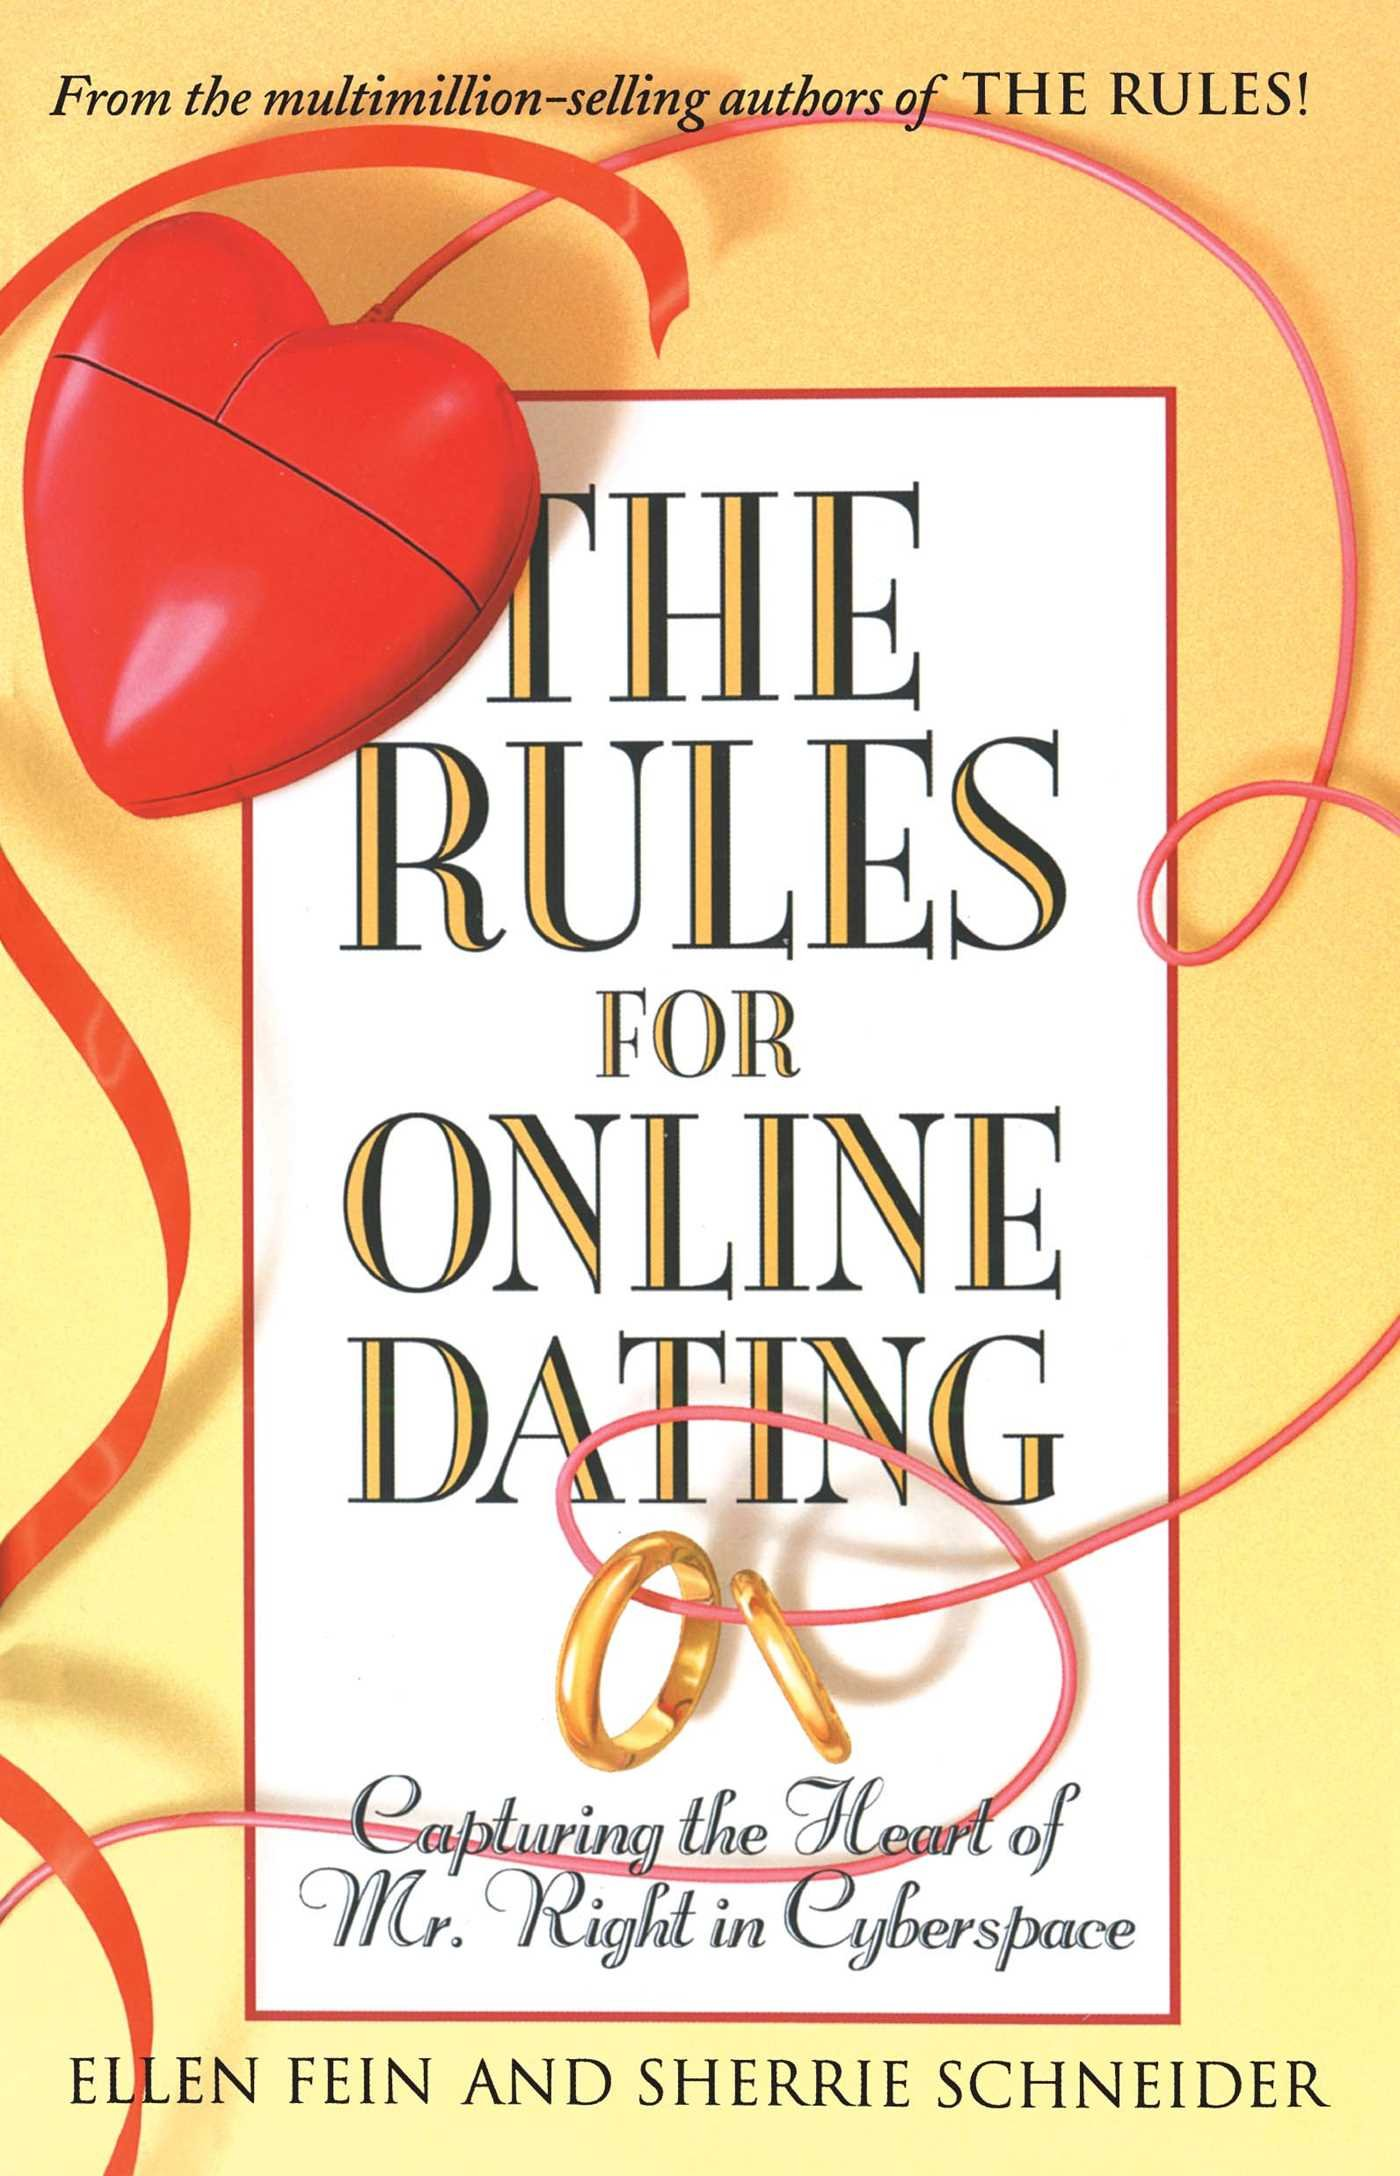 The rules online dating